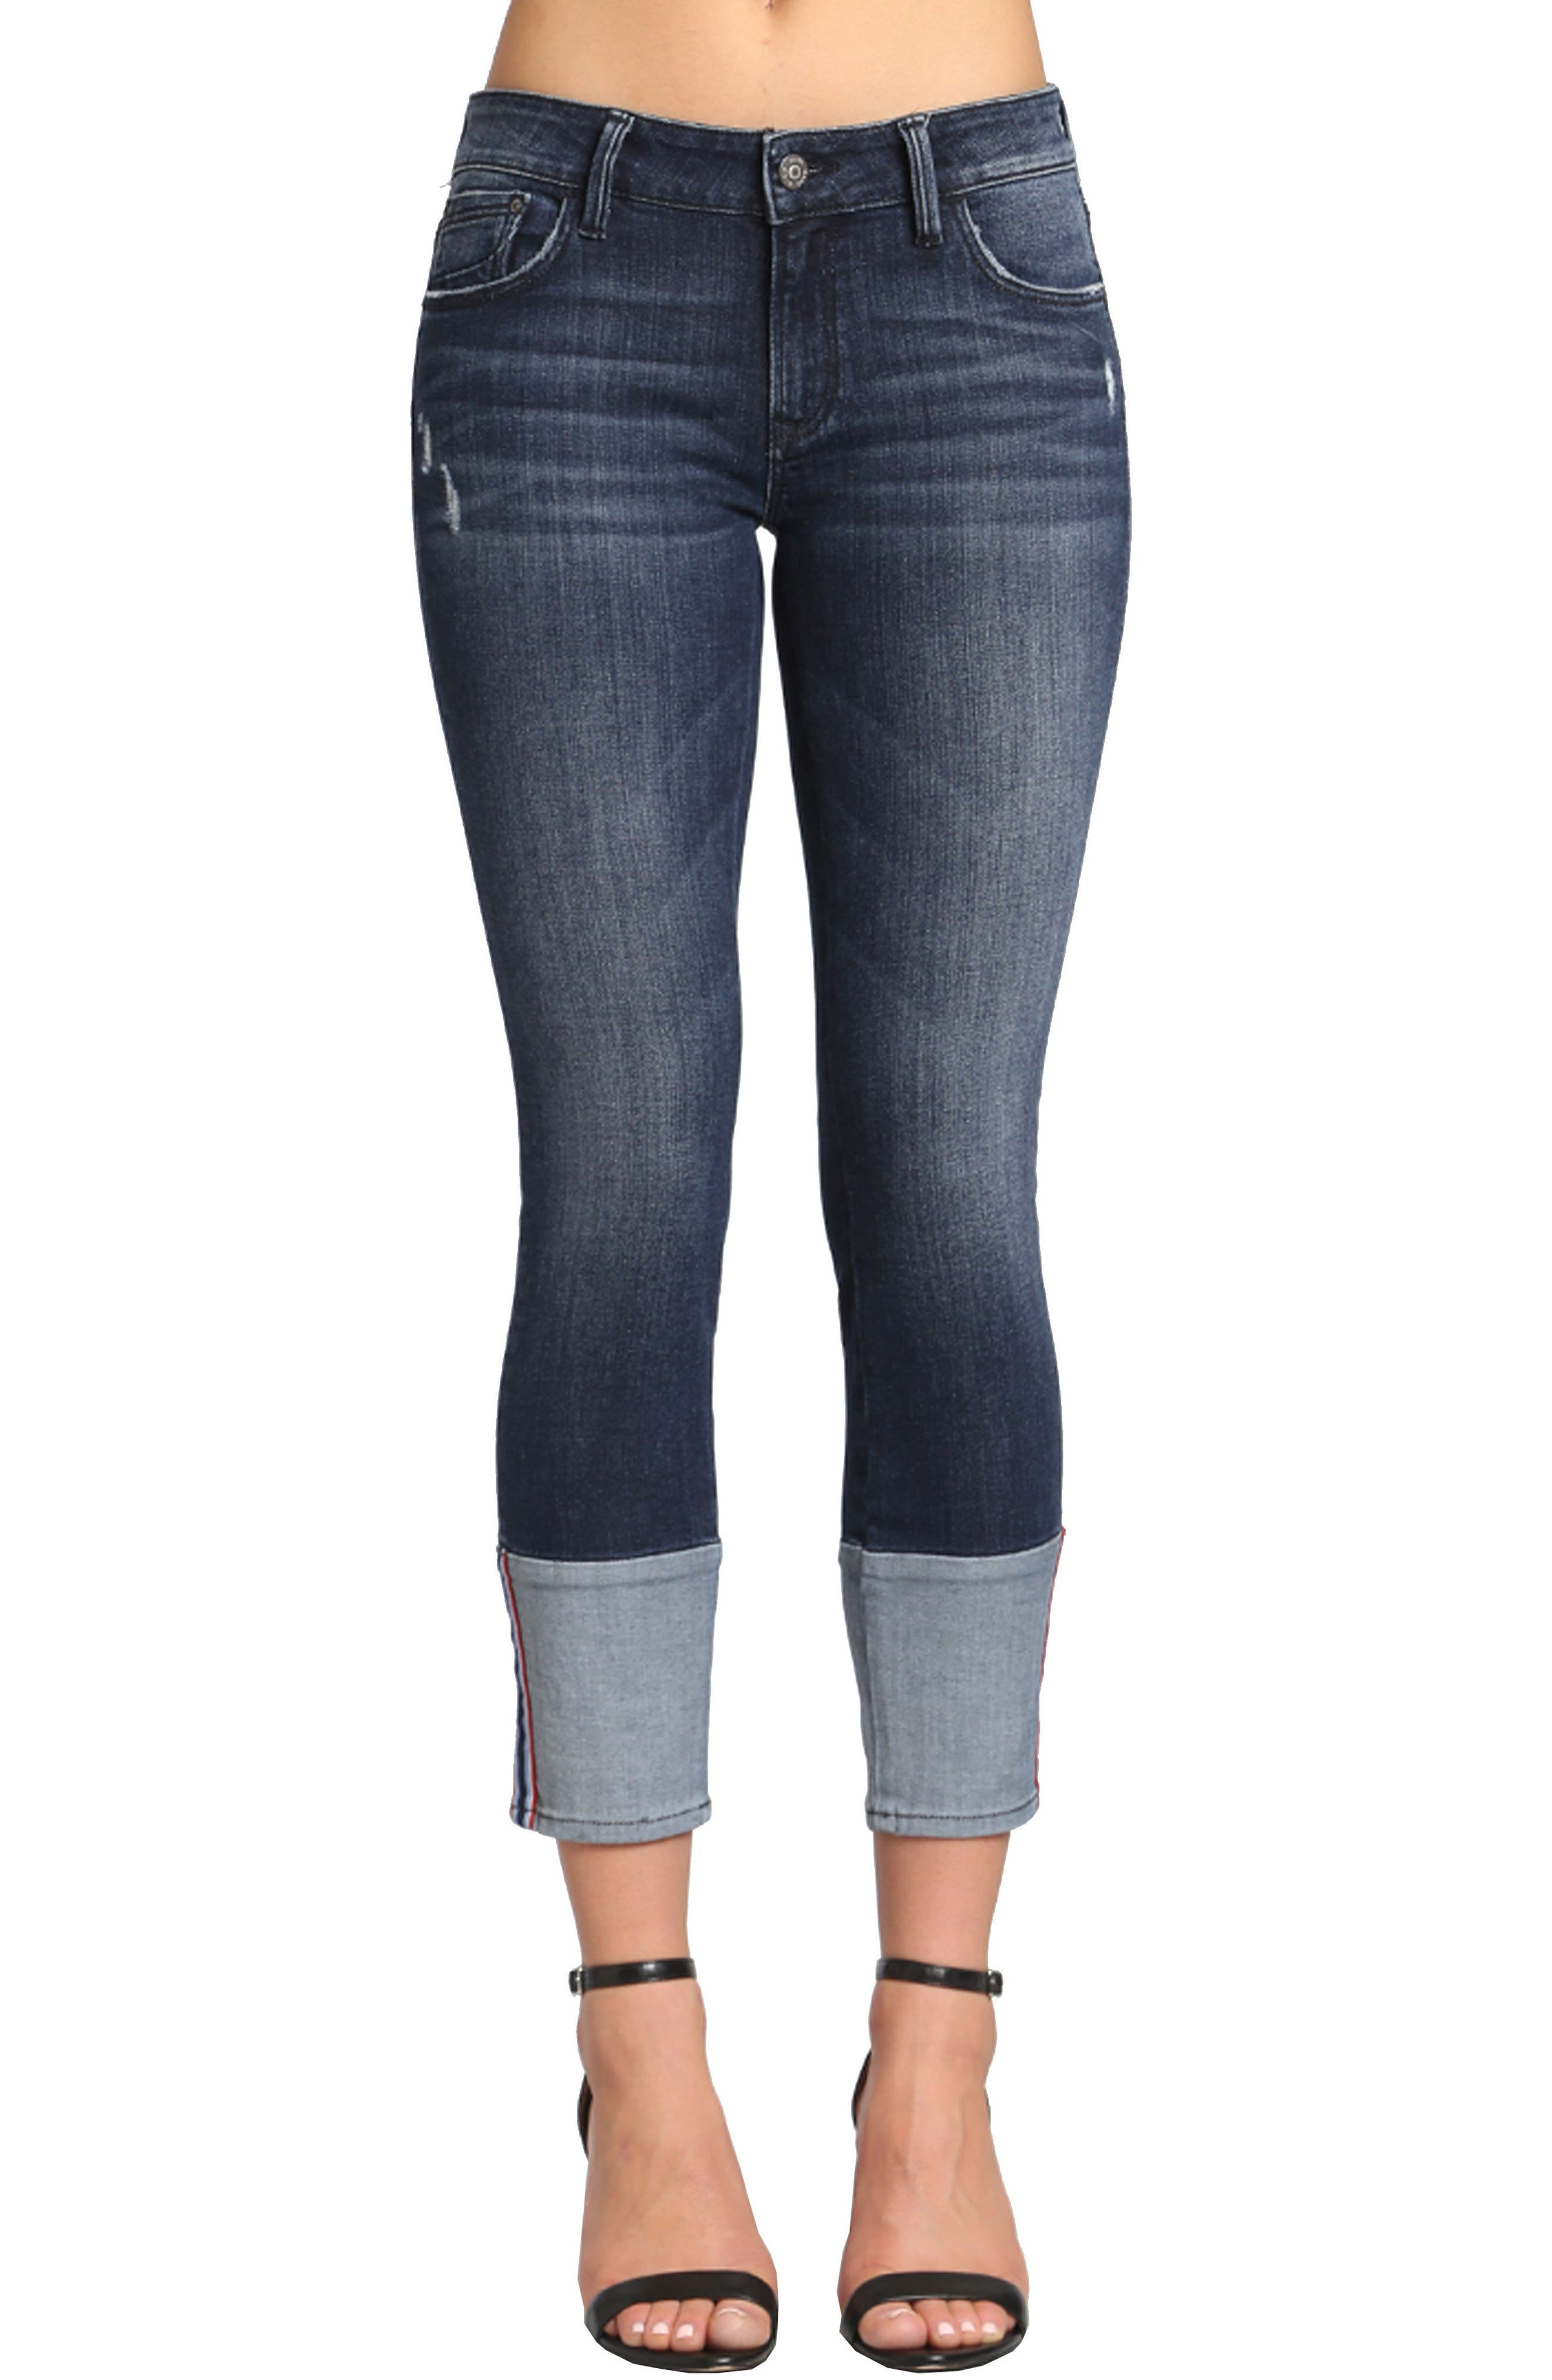 Caisy Cuffed Skinny Crop Jeans,                             Main thumbnail 1, color,